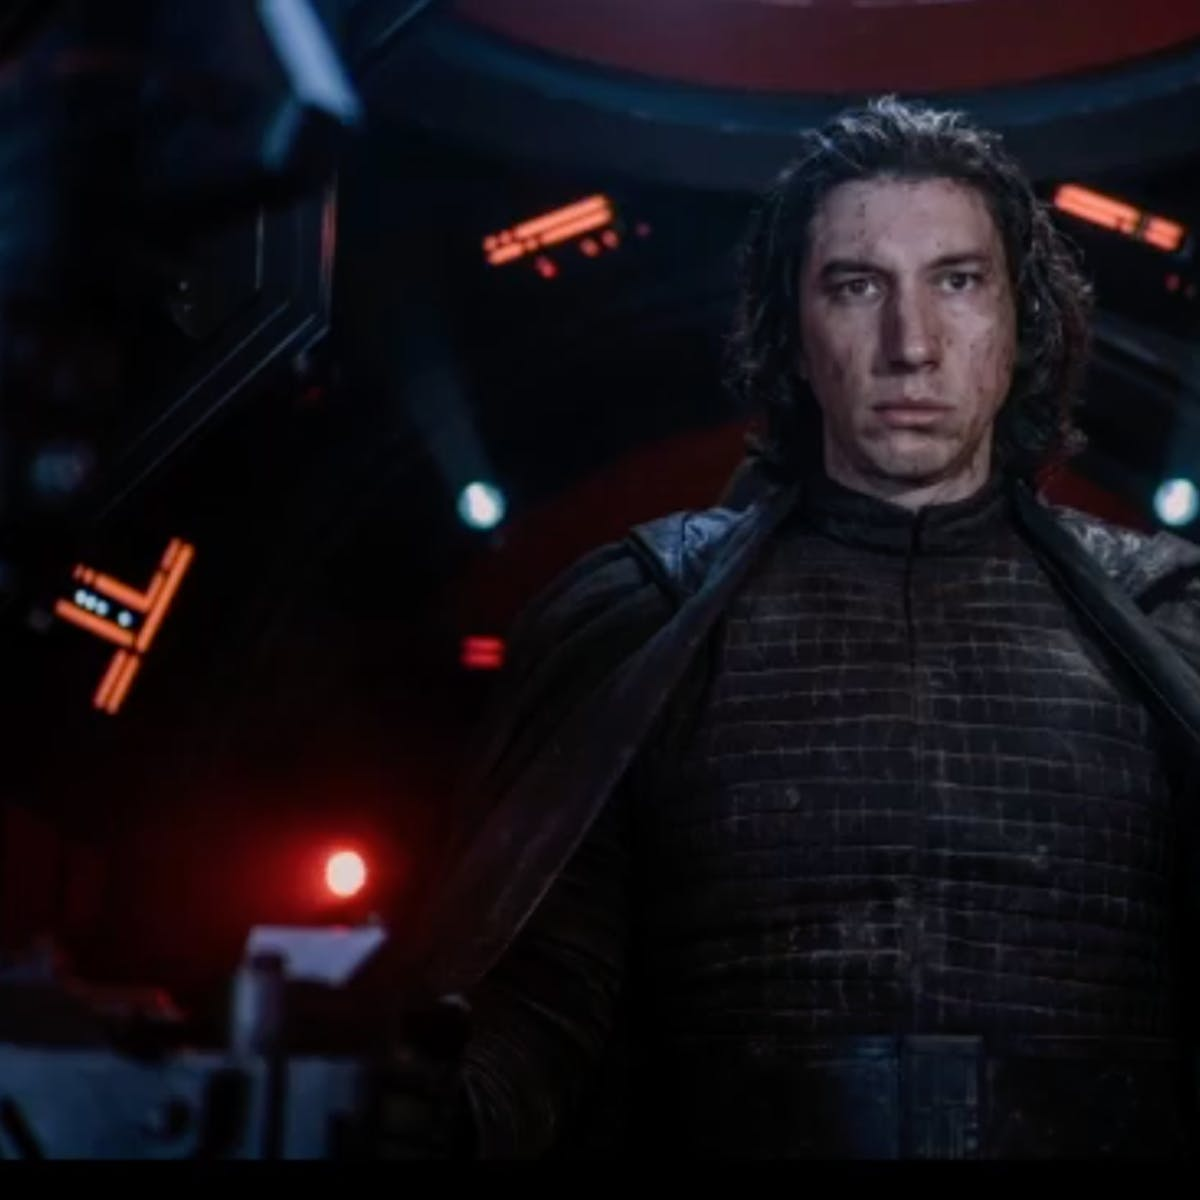 Star Wars 9' theory ties Kylo's redemption to an overlooked trailer detail